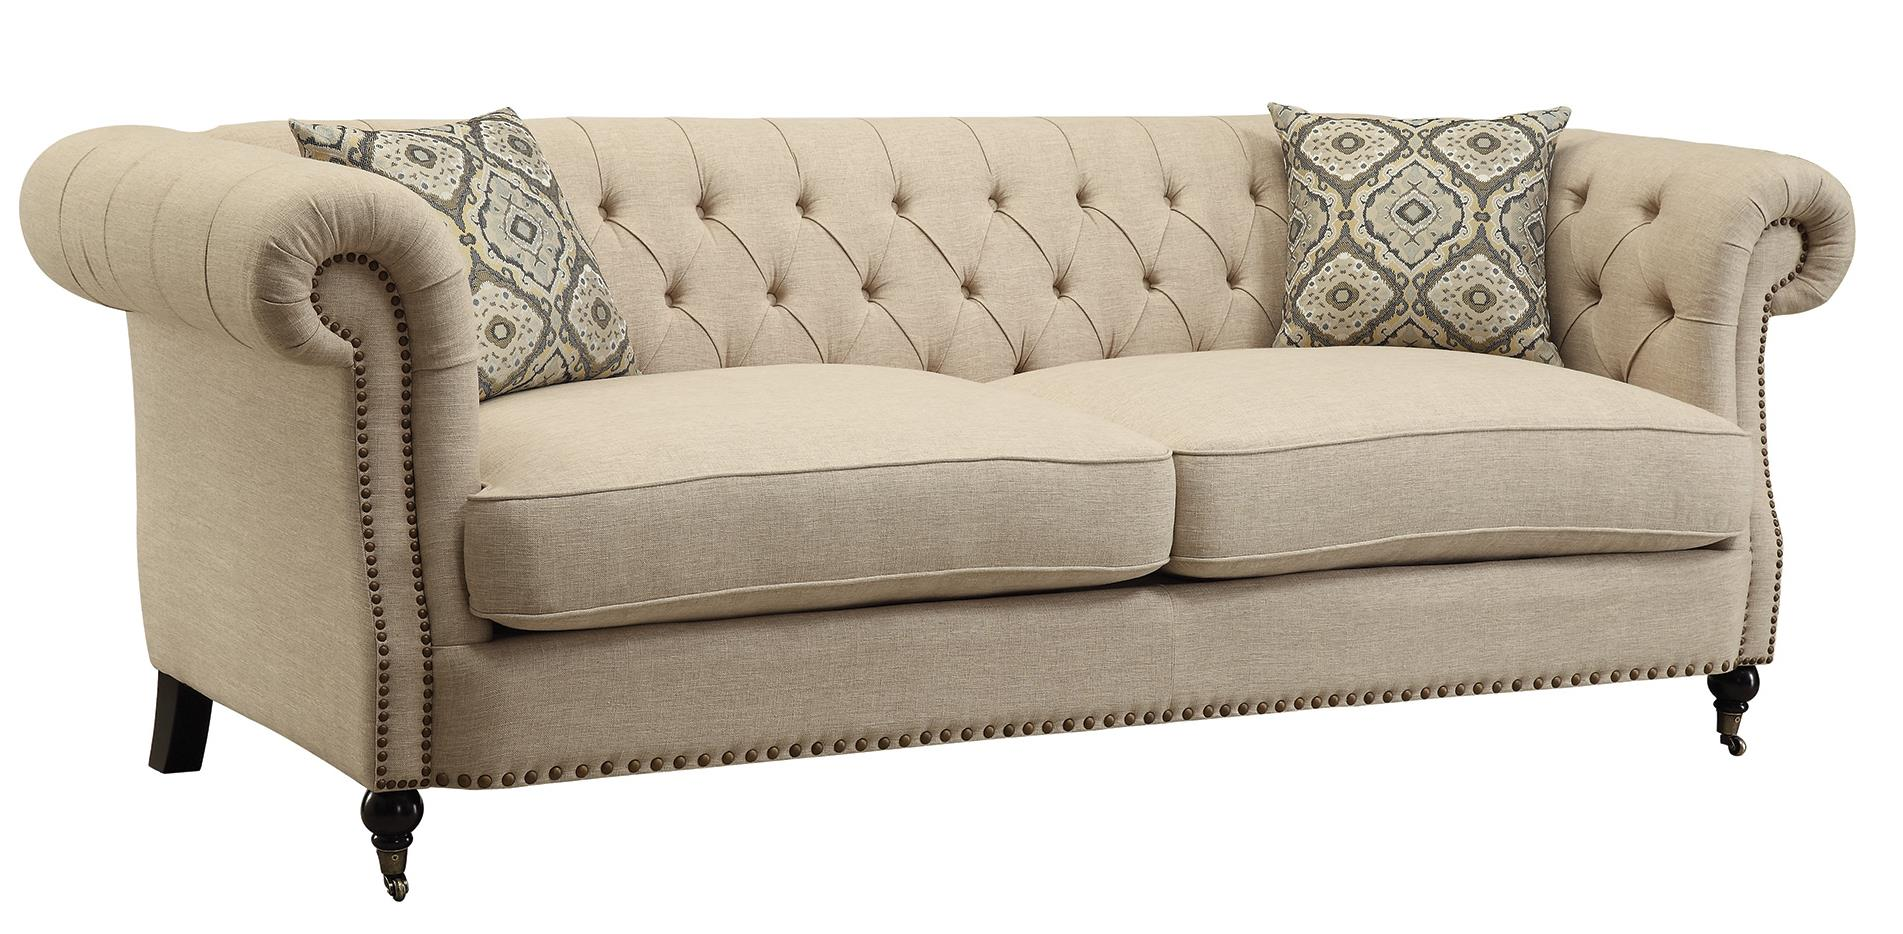 Coaster Trivellato 505821 Traditional Button Tufted Sofa With Large Rolled Arms And Nailheads